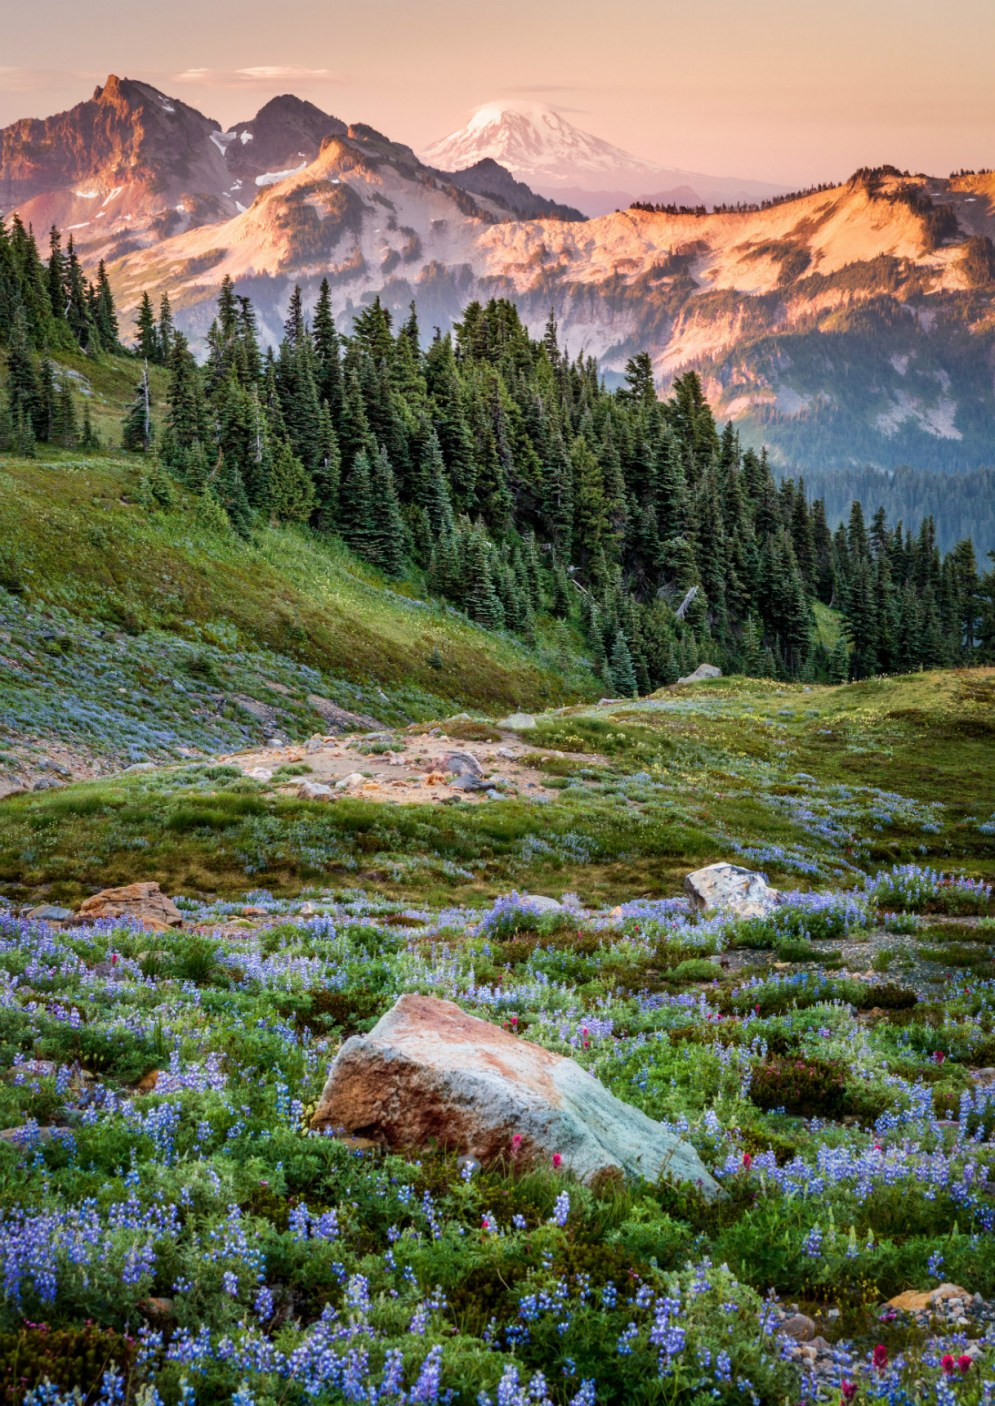 "Exploring Mount Rainier National Park in Washington in the summer, famous naturalist John Muir called it ""a garden filled knee-deep with fresh, lovely flowers of every hue, the most luxuriant and the most extravagantly beautiful of all the alpine gardens I ever beheld in all my mountain-top wanderings."" Photo by Rip Rippey. Posted on Tumblr by the US Department of the Interior, 5/20/17."